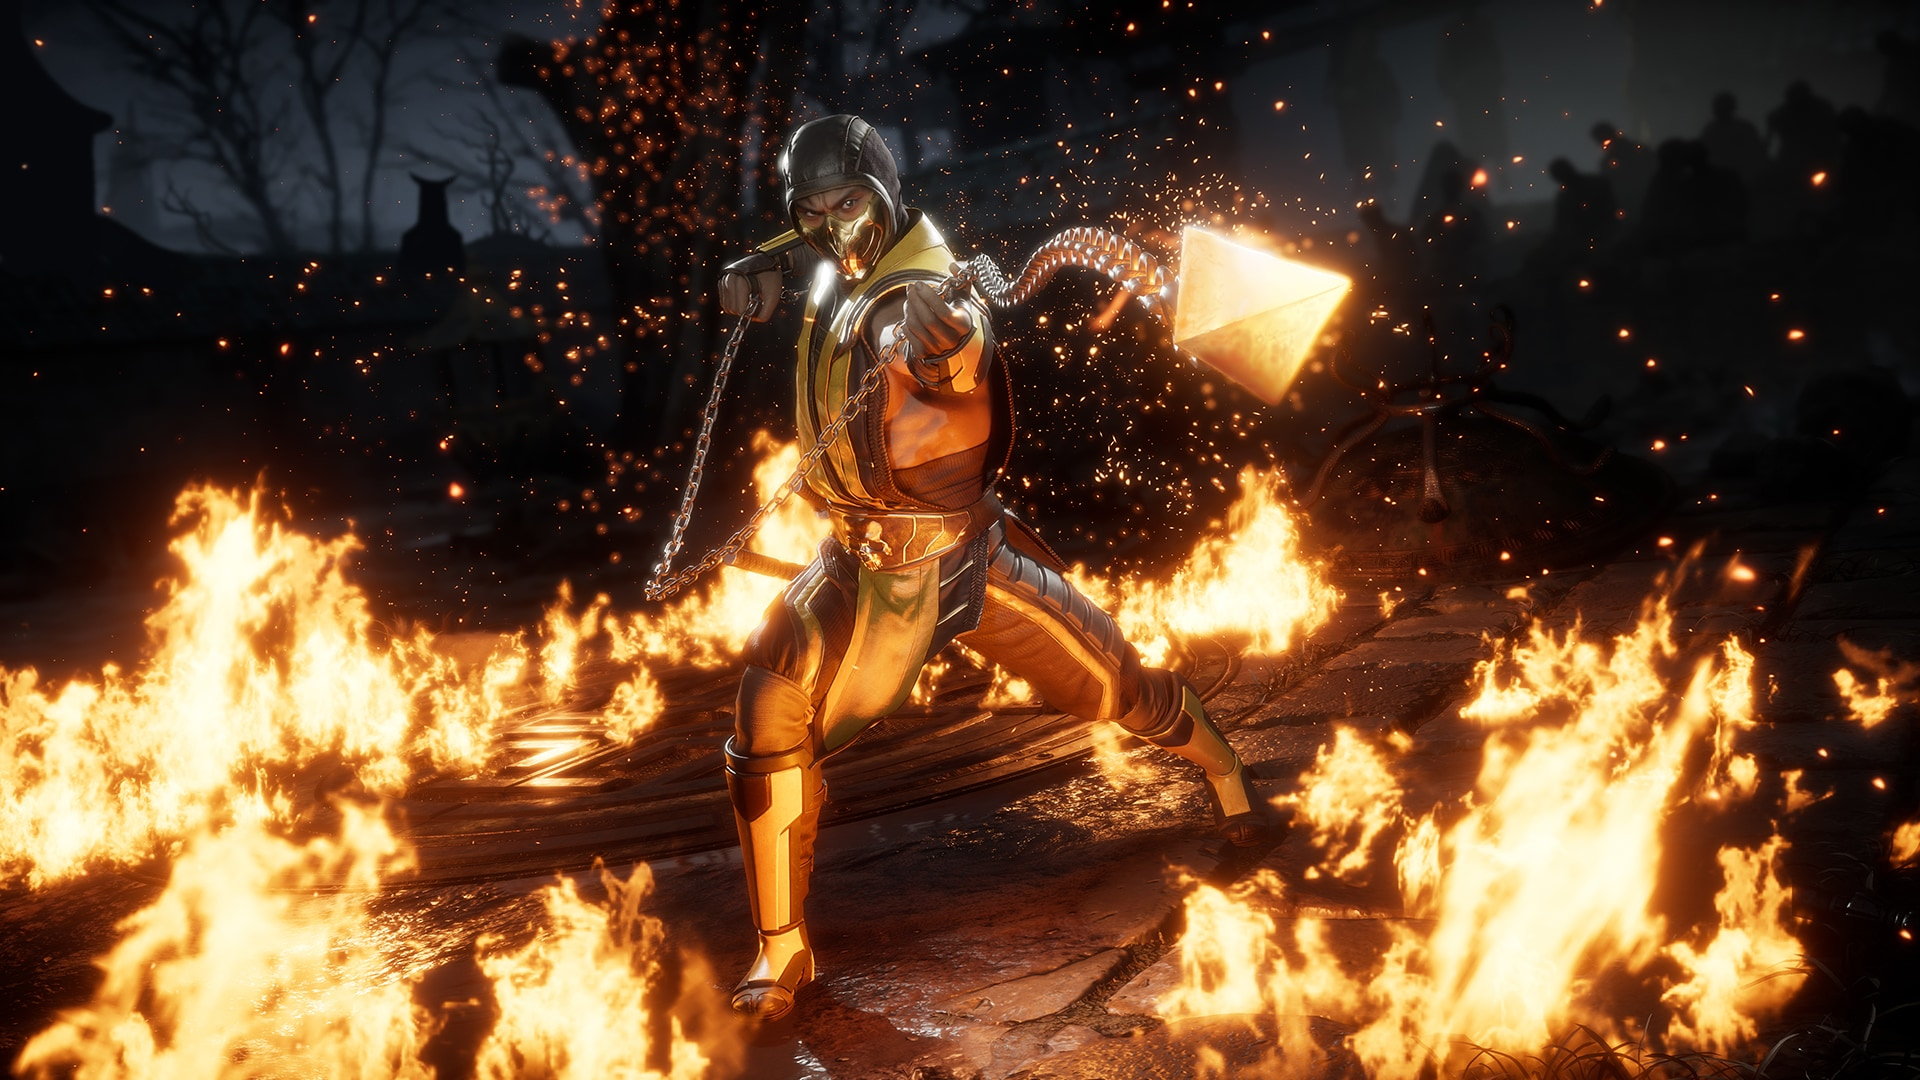 https://www.smartworld.it/wp-content/uploads/2019/03/Mortal-Kombat-11-Story-Trailer.jpg